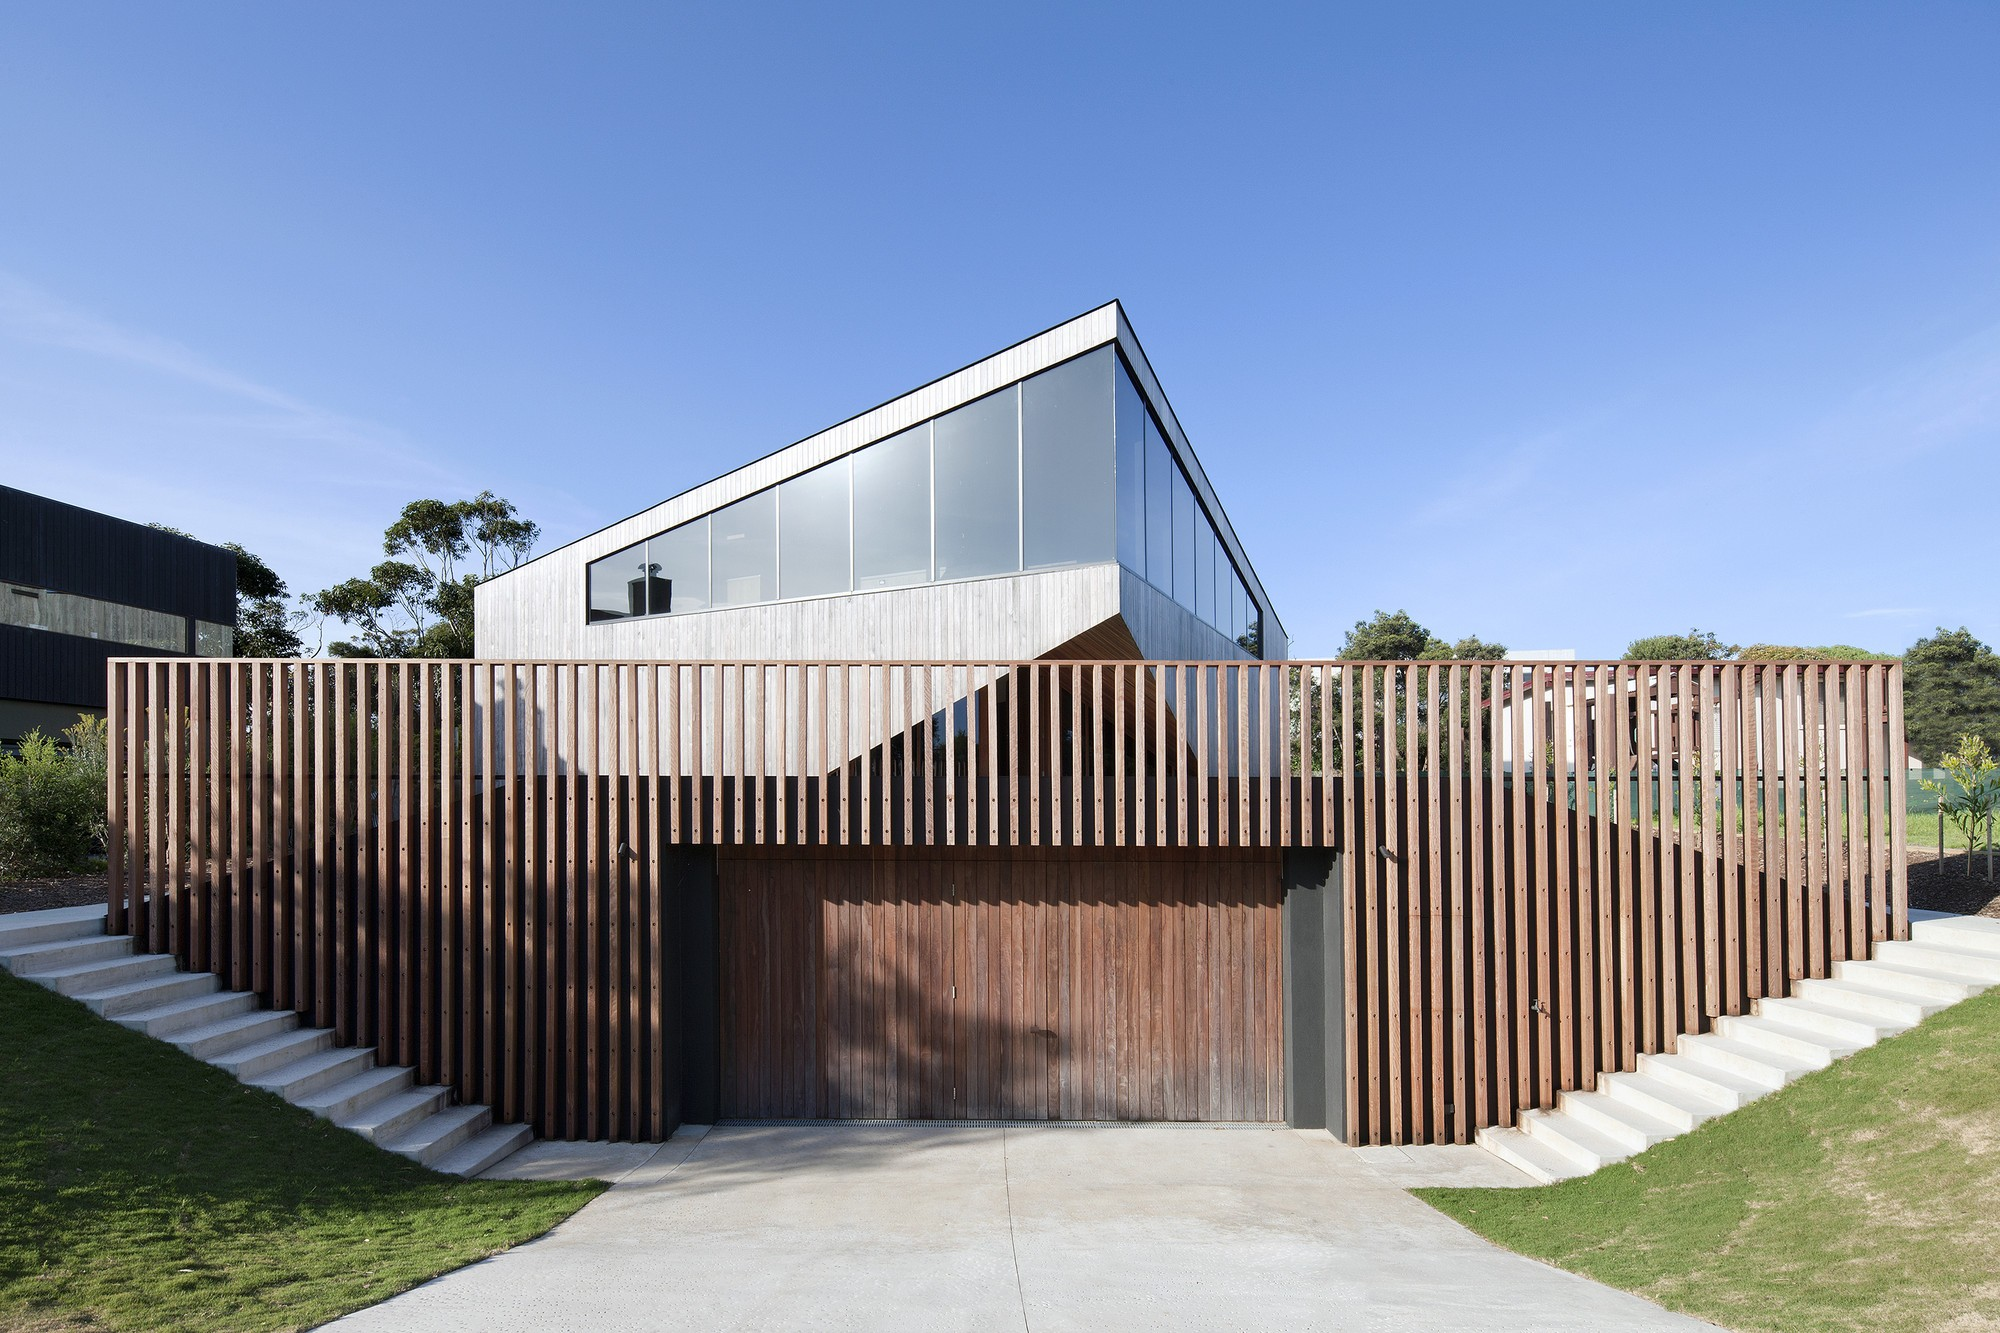 Gambar 01 Aireys house by Byrne architects Sumber archdaily 1